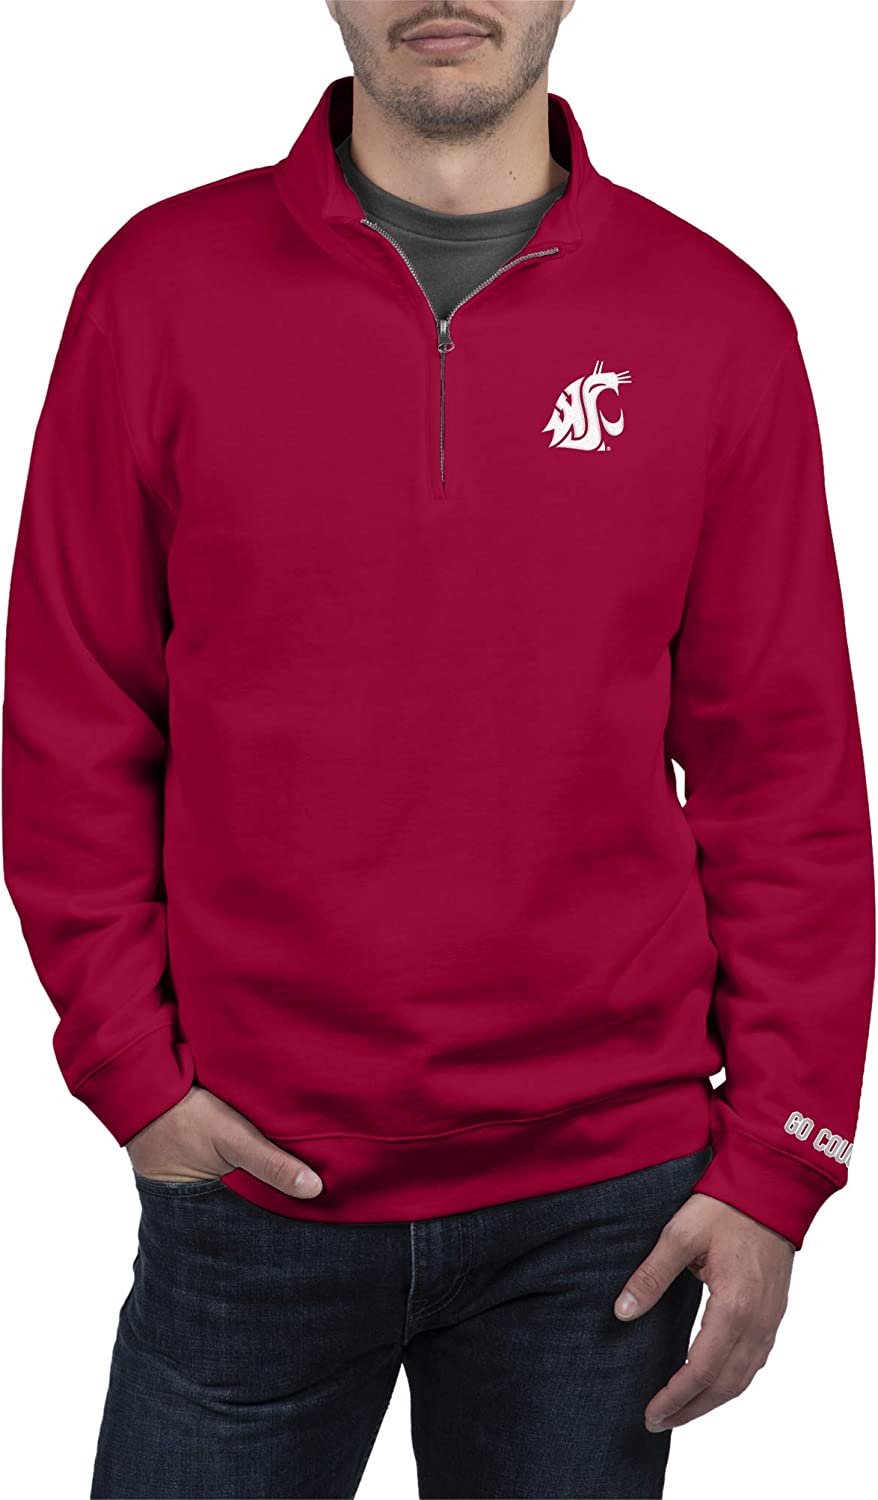 Top of the World NCAA Mens Quarter Zip Sweatshirt Team Applique Icon